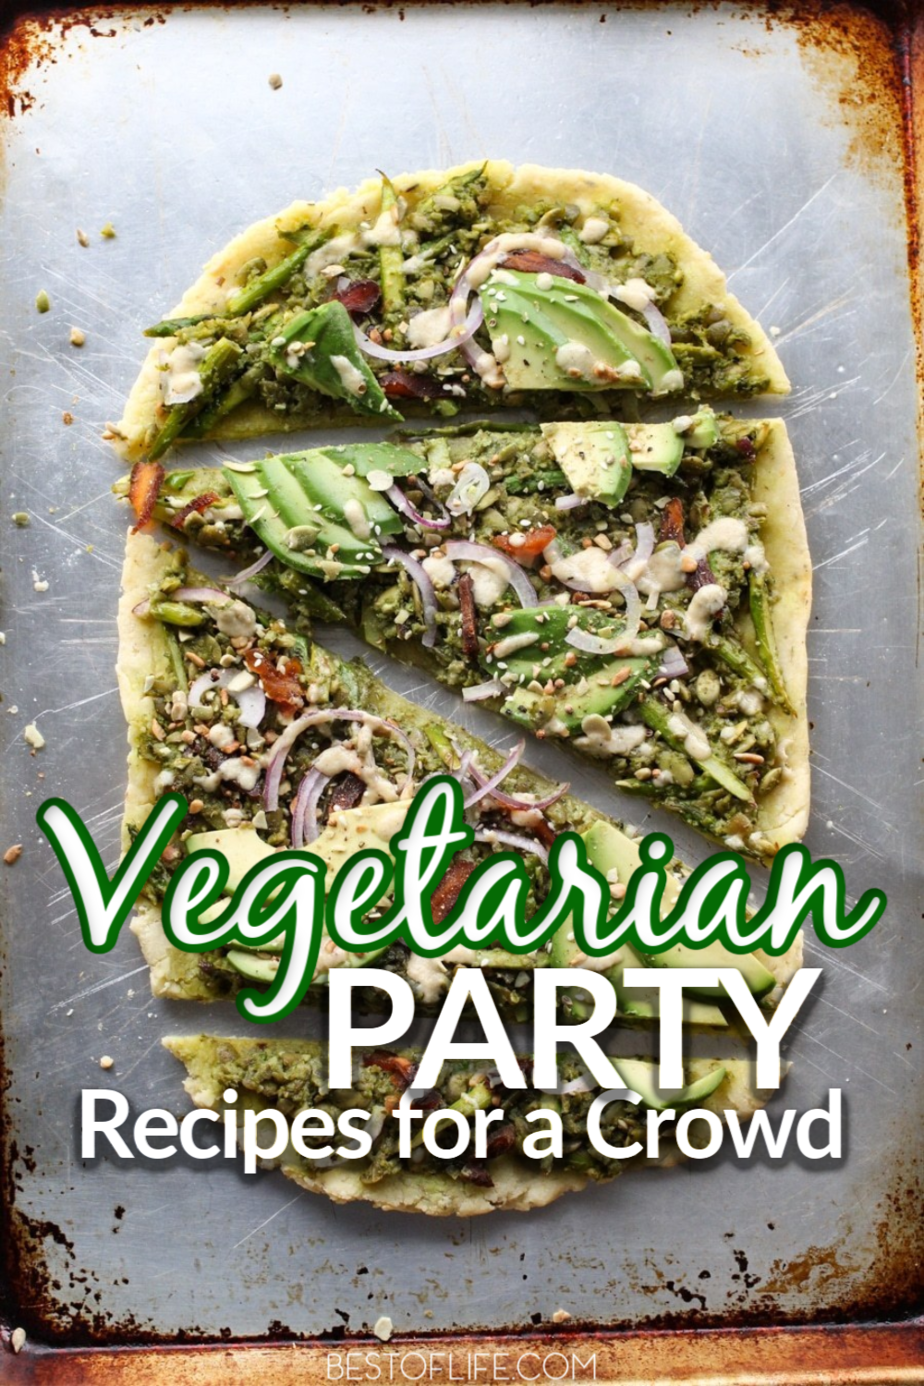 Vegetarian party recipes don't have to be boring trays of veggies and a dip. You could make some of the best party recipes and still make them vegetarian. Healthy Party Recipes | Vegetarian Party Food | Party Recipes for Vegetarians | Vegetarian Recipes | Plant Based Party Recipes #vegetarian #party